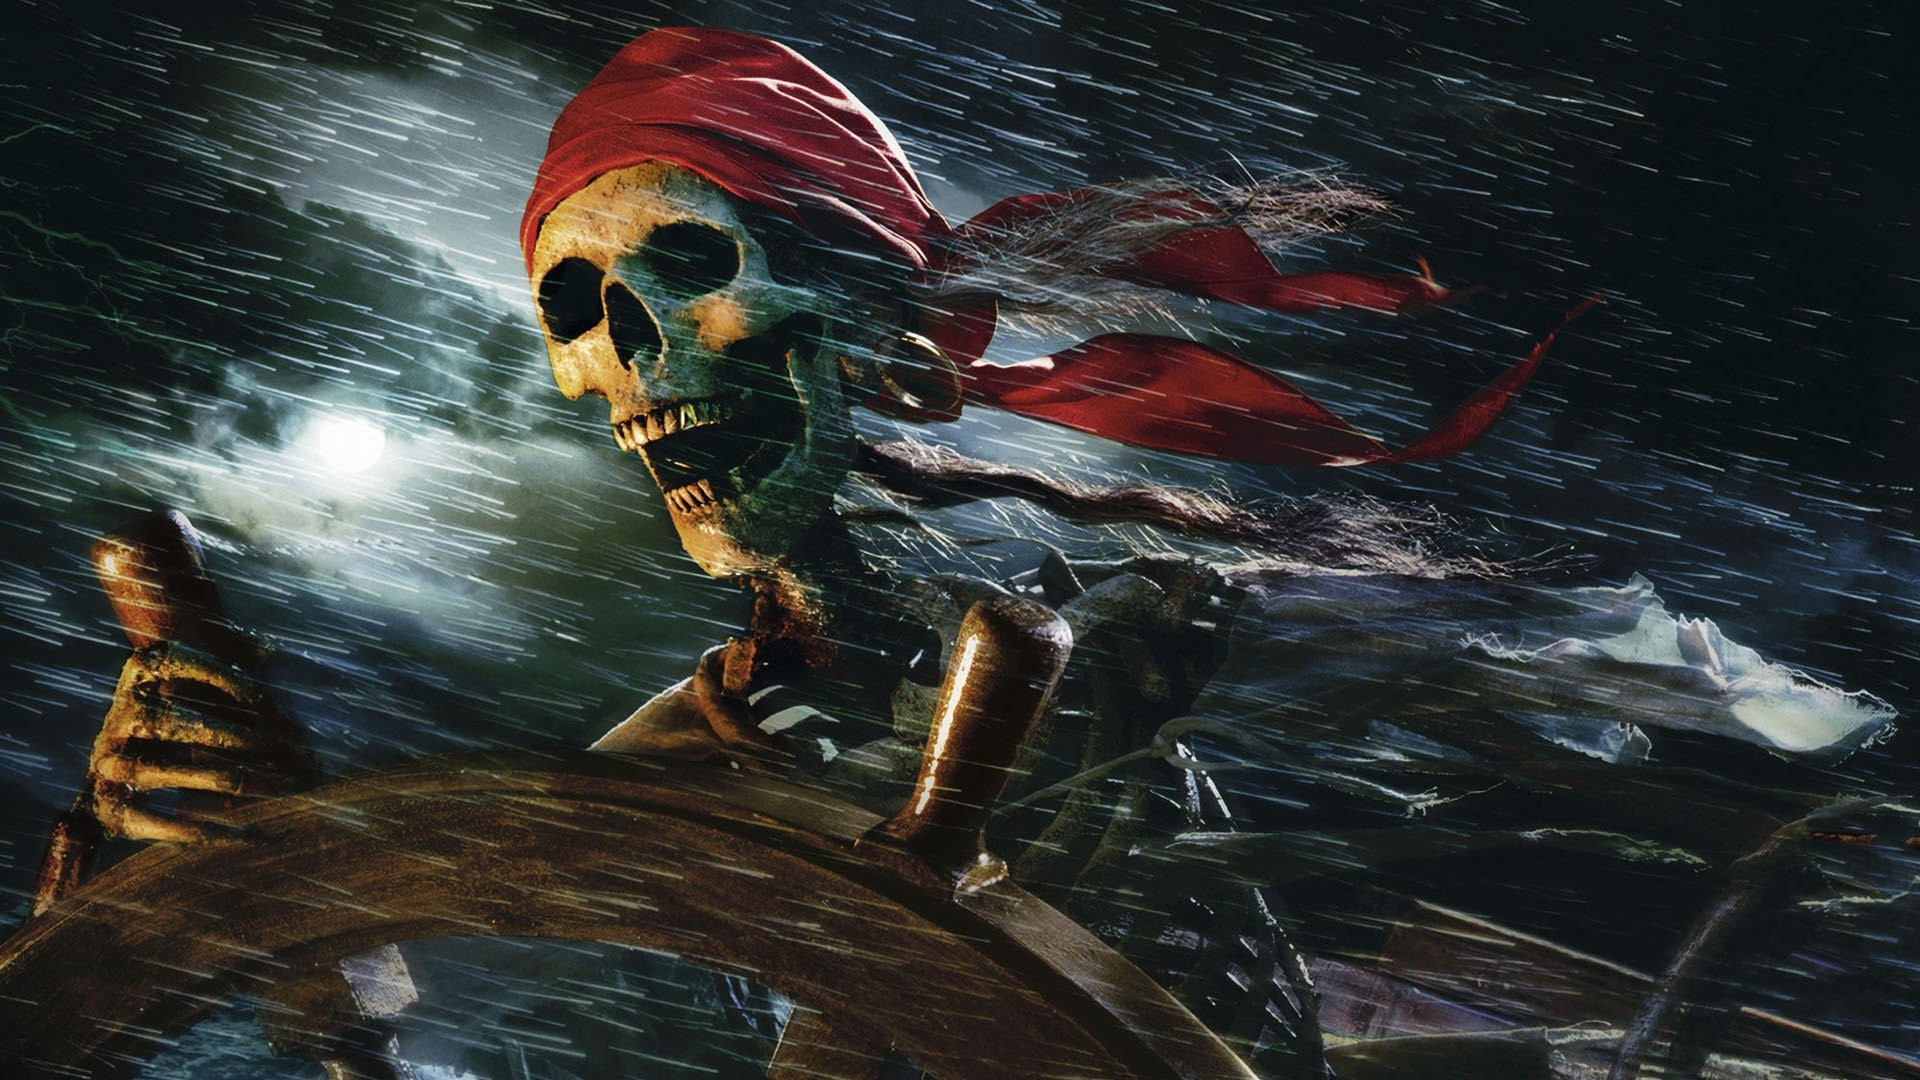 Pirates Of The Caribbean Wallpapers HDQ Beautiful Pirates Of The | HD  Wallpapers | Pinterest | Wallpaper and Hd wallpaper